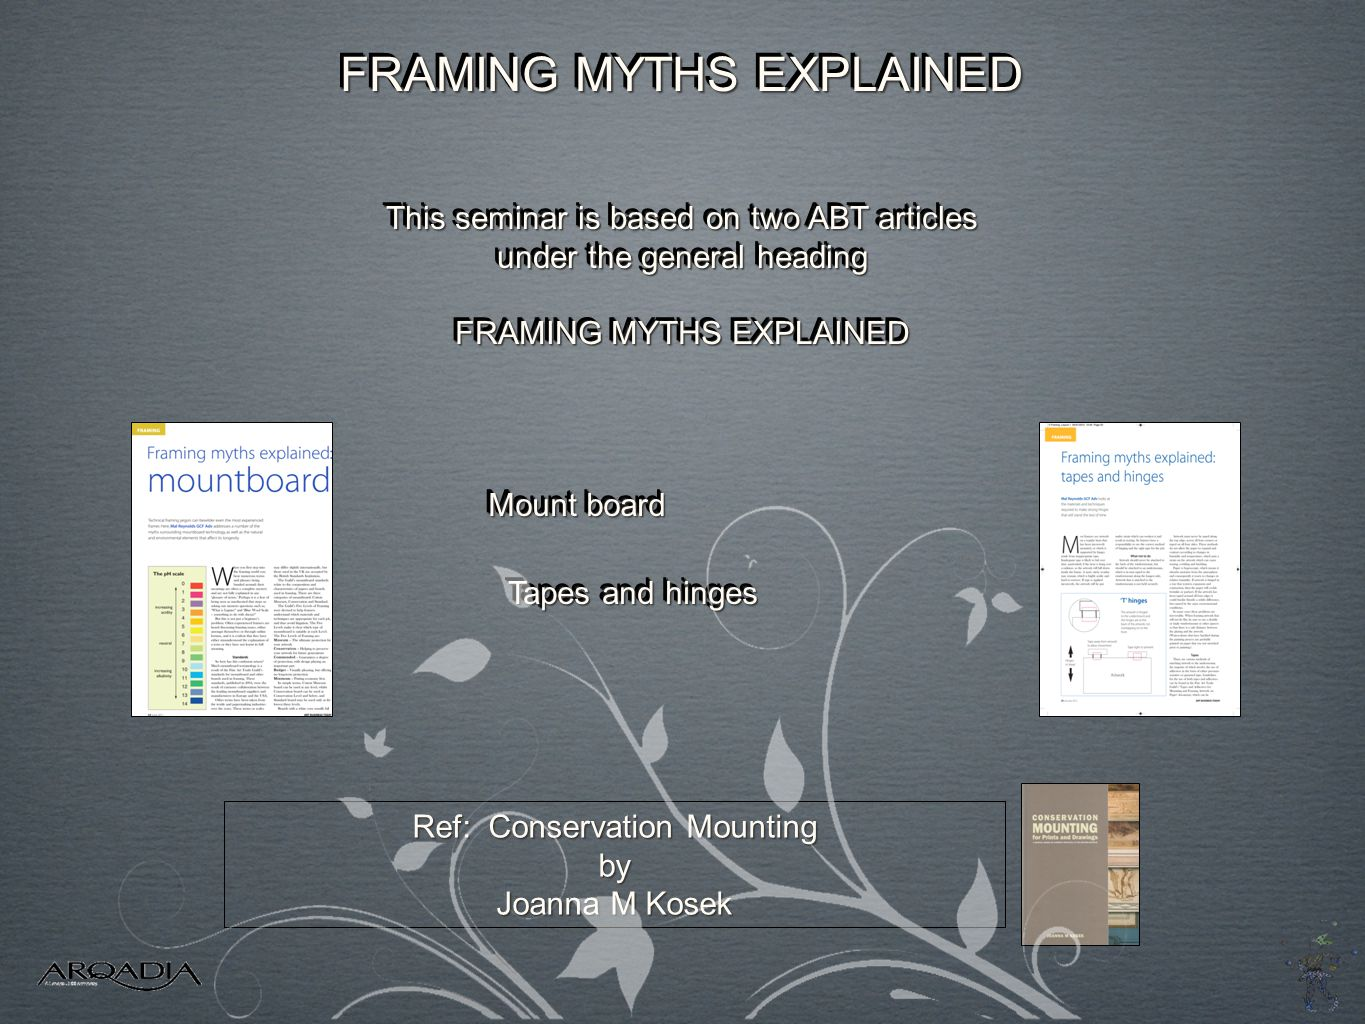 This seminar is based on two ABT articles under the general heading FRAMING MYTHS EXPLAINED This seminar is based on two ABT articles under the general heading FRAMING MYTHS EXPLAINED Tapes and hinges Ref: Conservation Mounting by Joanna M Kosek Mount board FRAMING MYTHS EXPLAINED